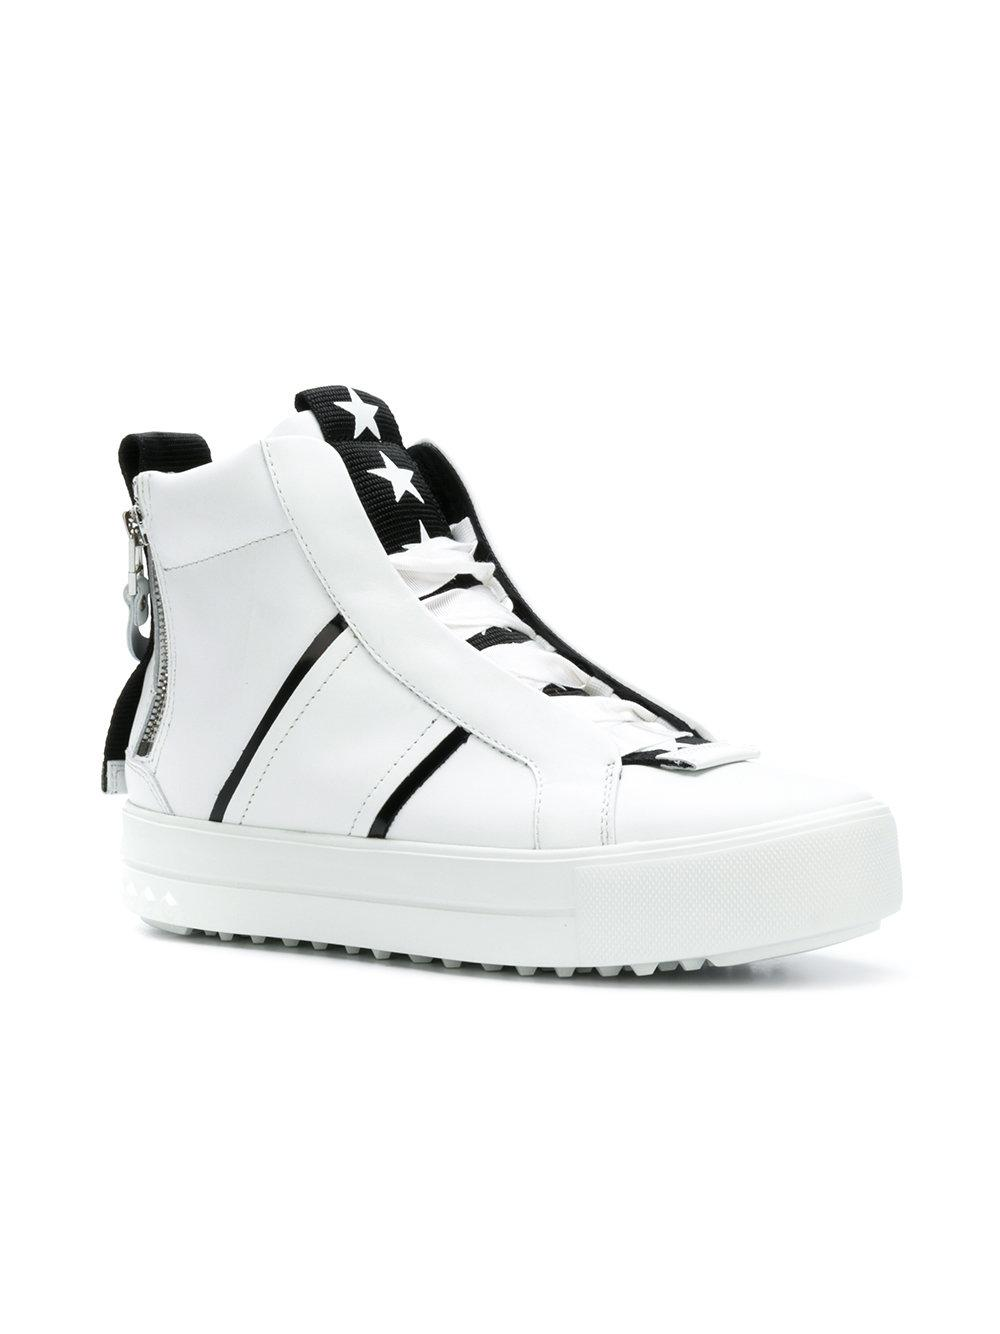 Kennel & Schmenger Leather High-top Sneakers in White